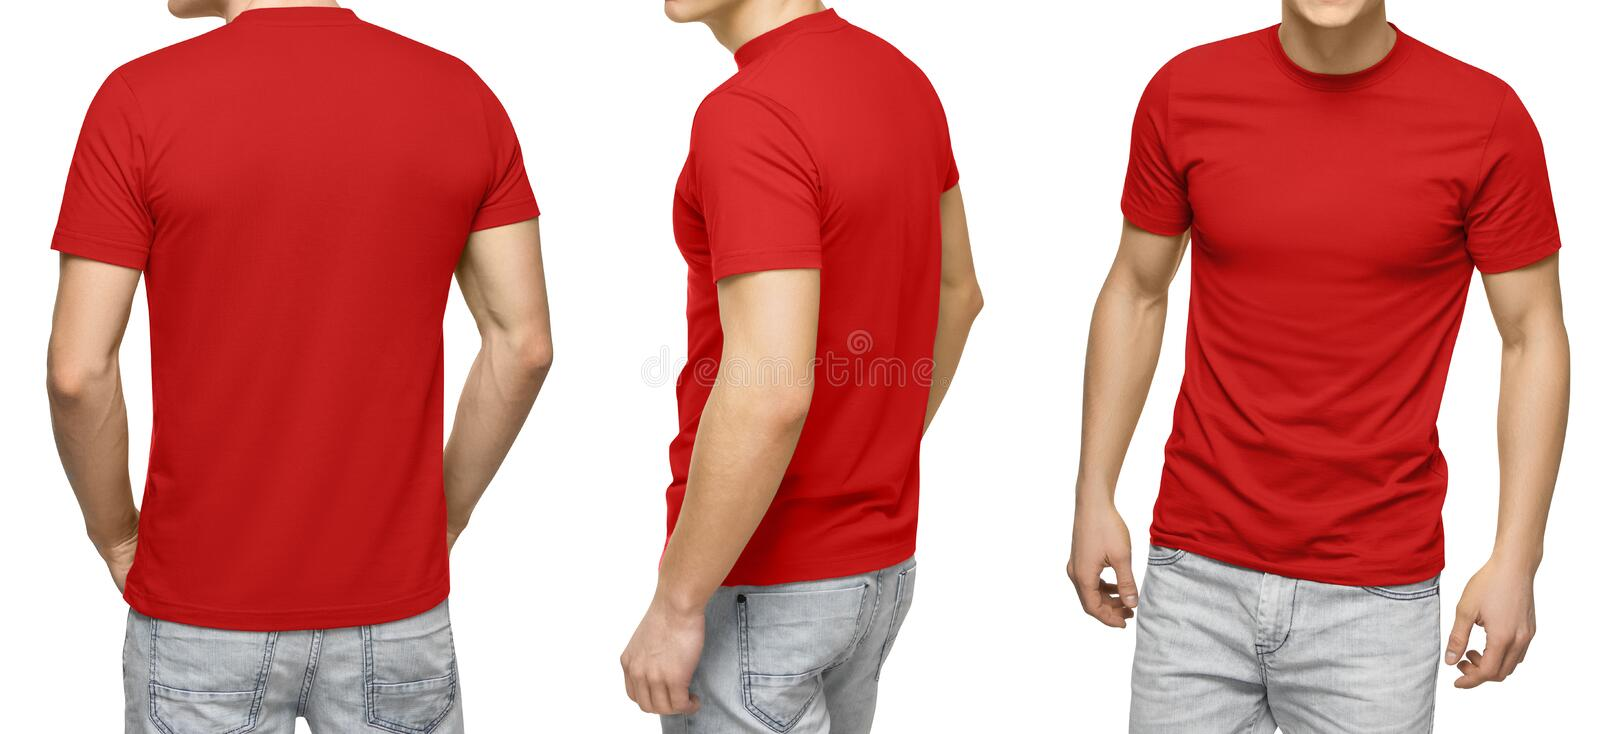 Male in blank red t-shirt, front and back view, isolated white background. Design men tshirt template and mockup for print royalty free stock photography